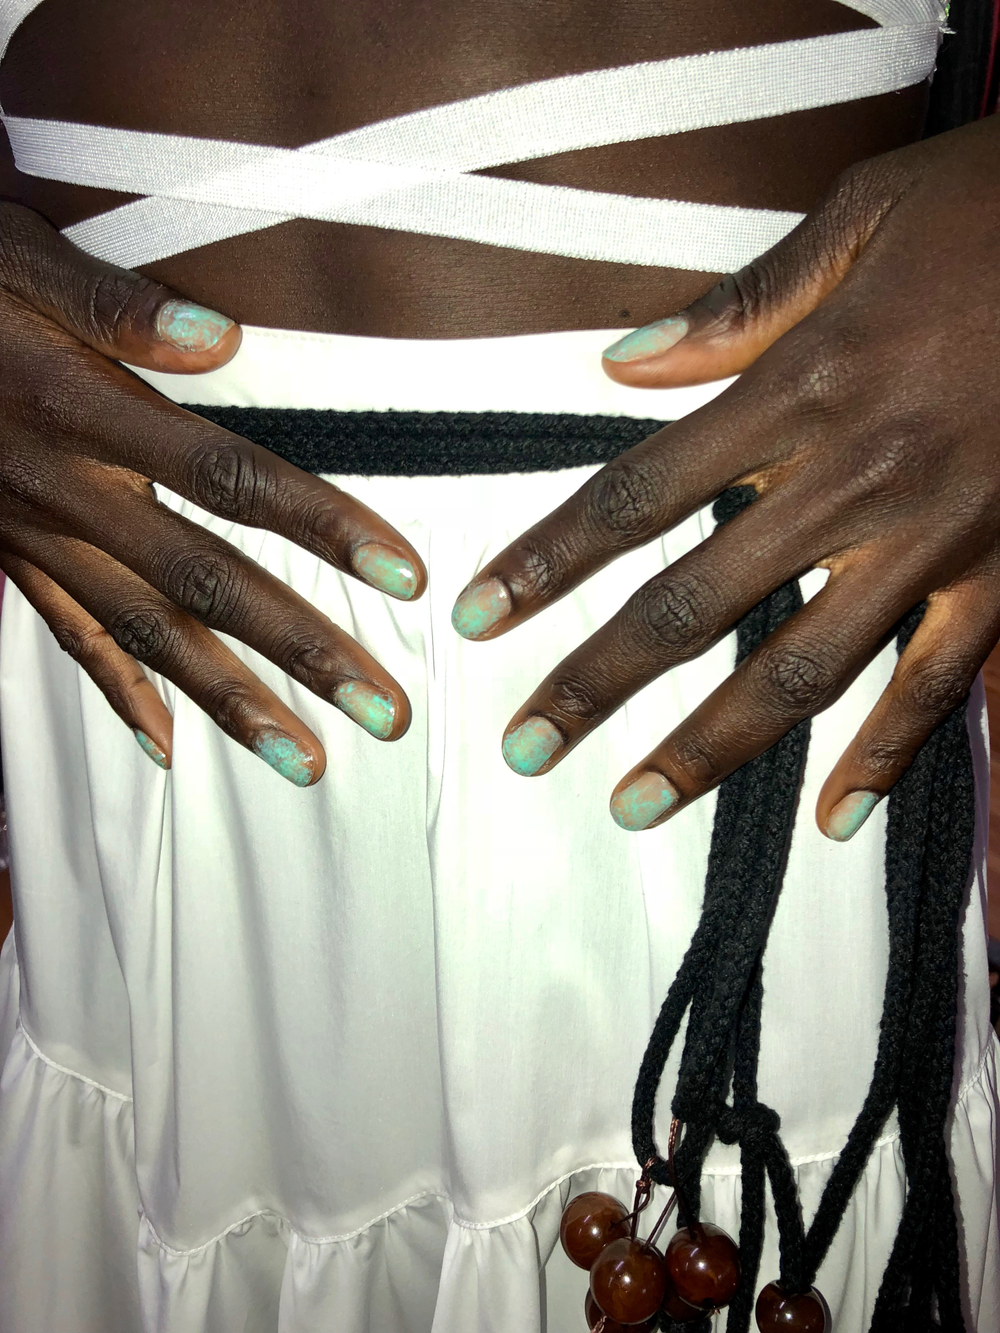 <p>Orly for Maryam Nassir Zadeh. Lead manicurist: Holly Falcone. Photos courtesy of Orly.</p>